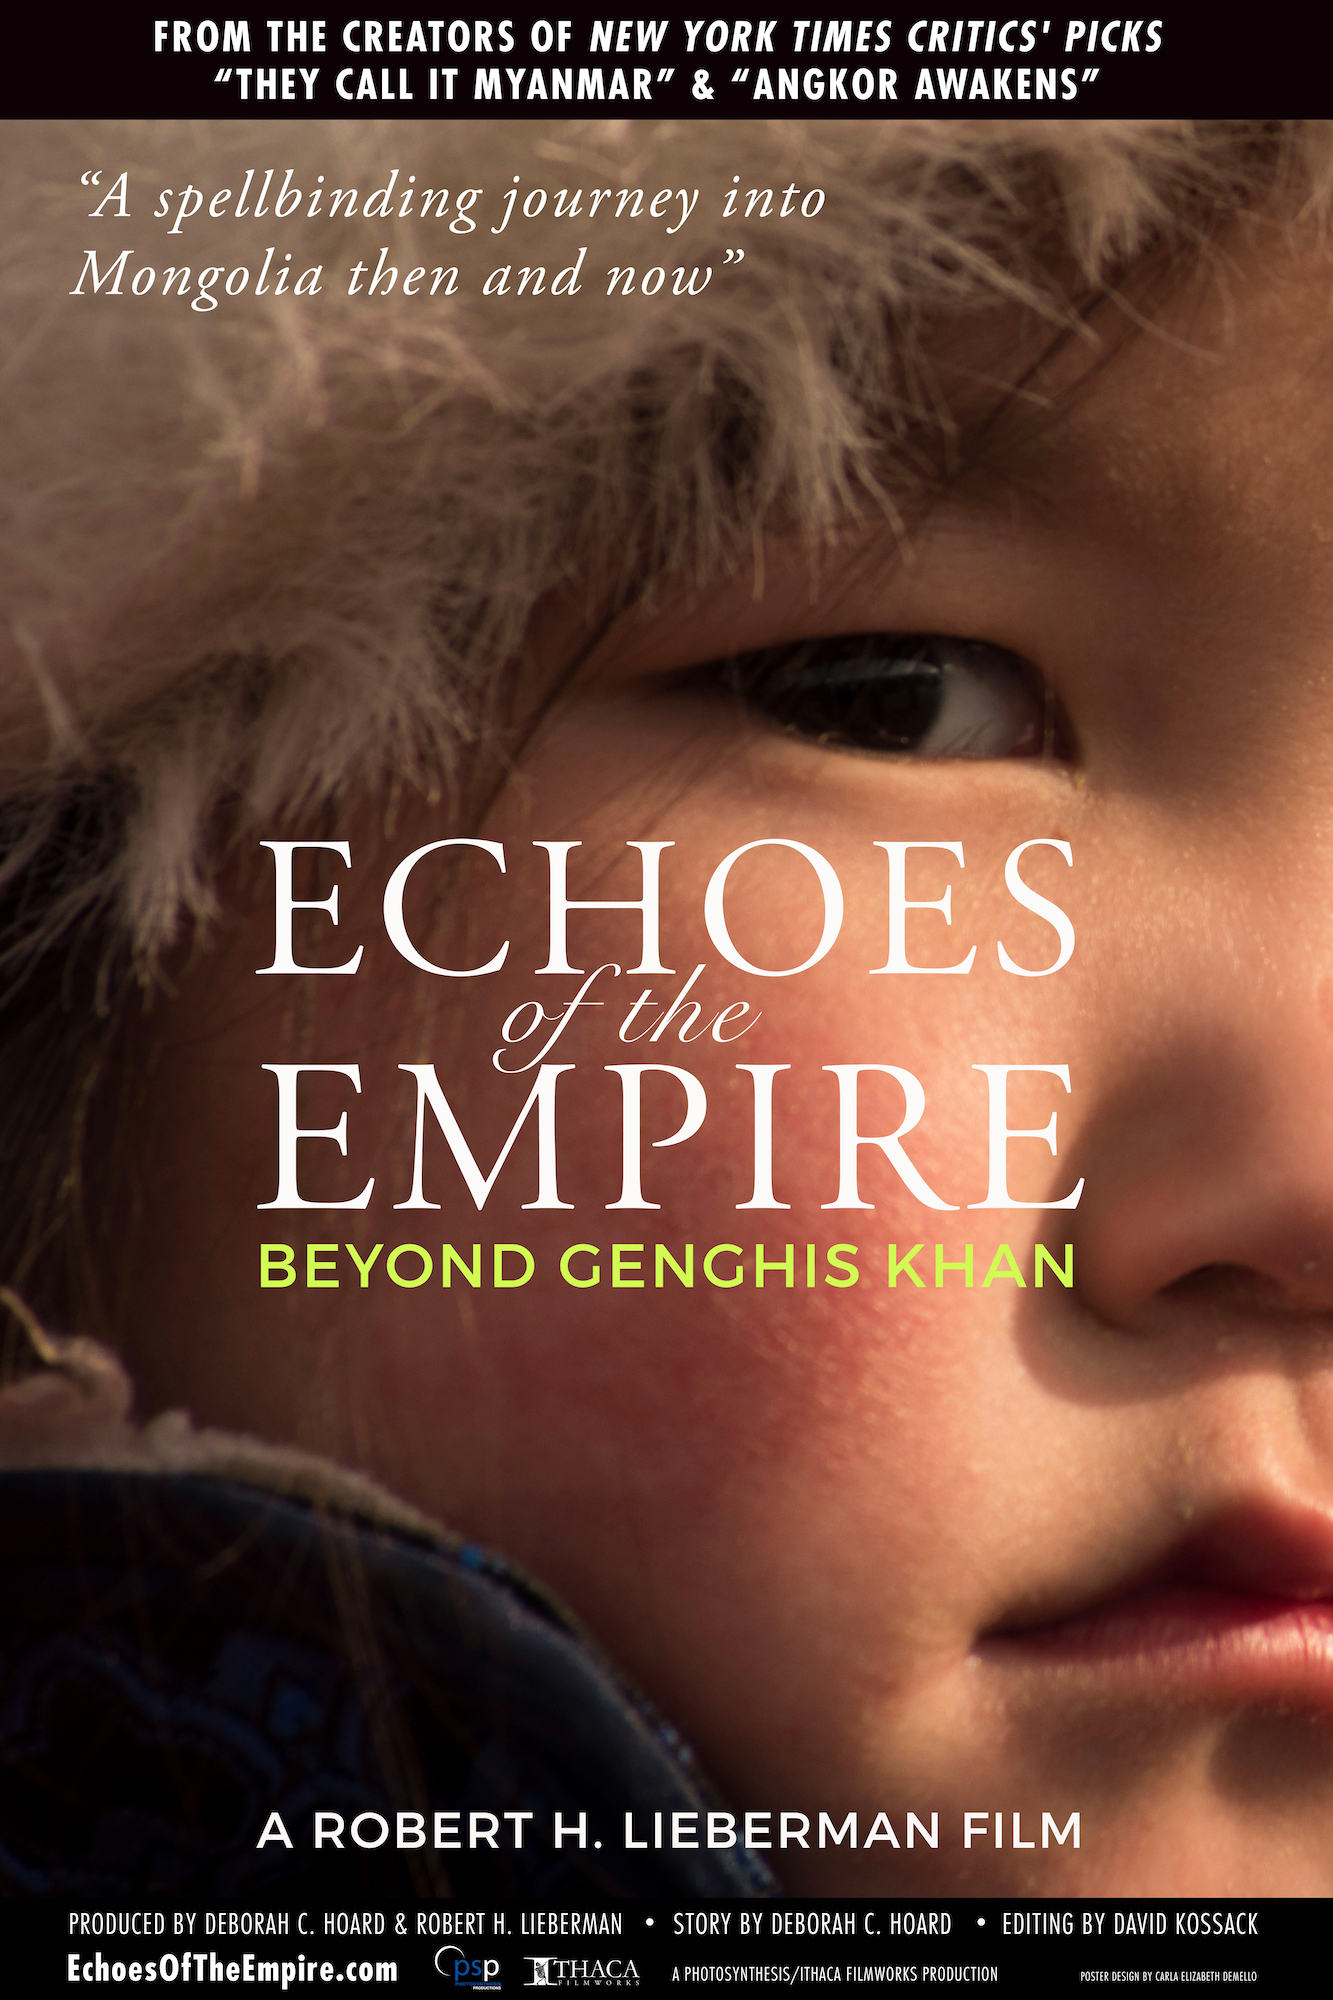 ECHOES OF THE EMPIRE: BEYOND GENGHIS KHAN